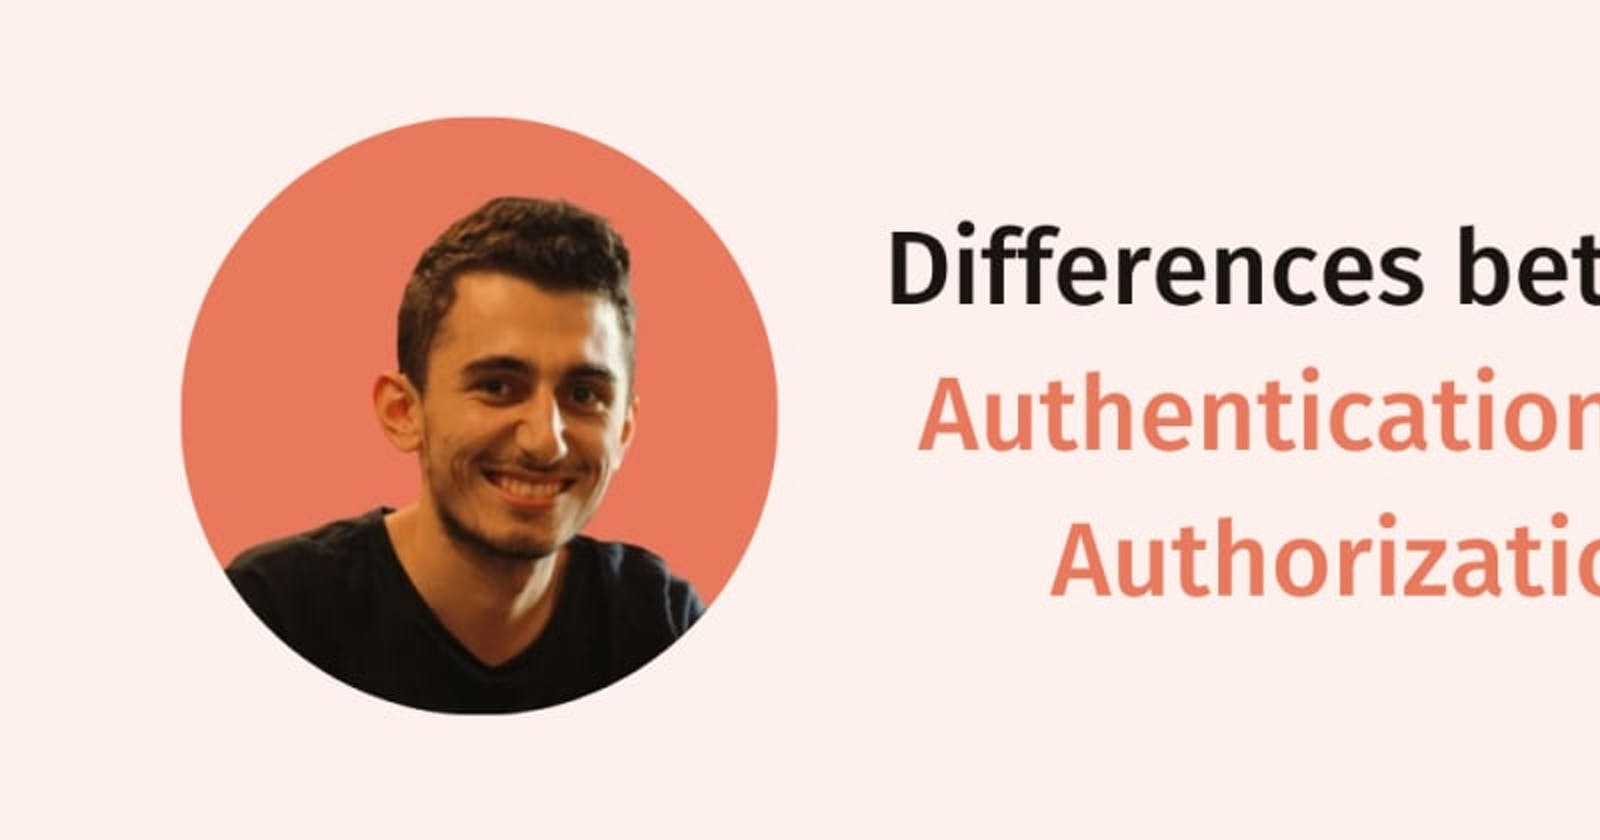 Differences between Authentication and Authorization